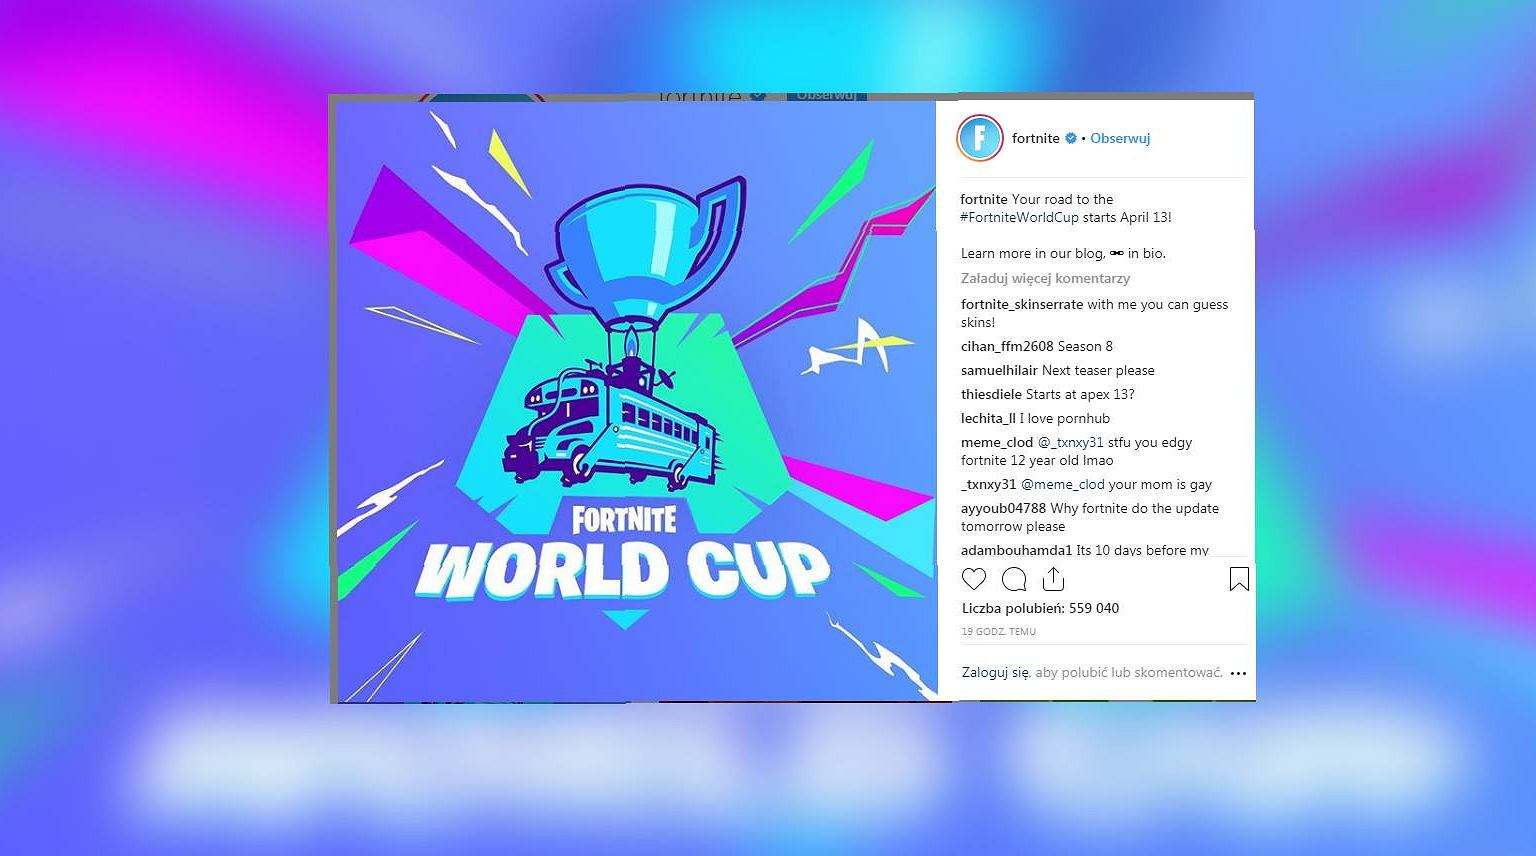 we need to get to know the prize pool at the fortnite world cup tournament 100 million dollars are waiting for the winners - fortnite world cup date finals